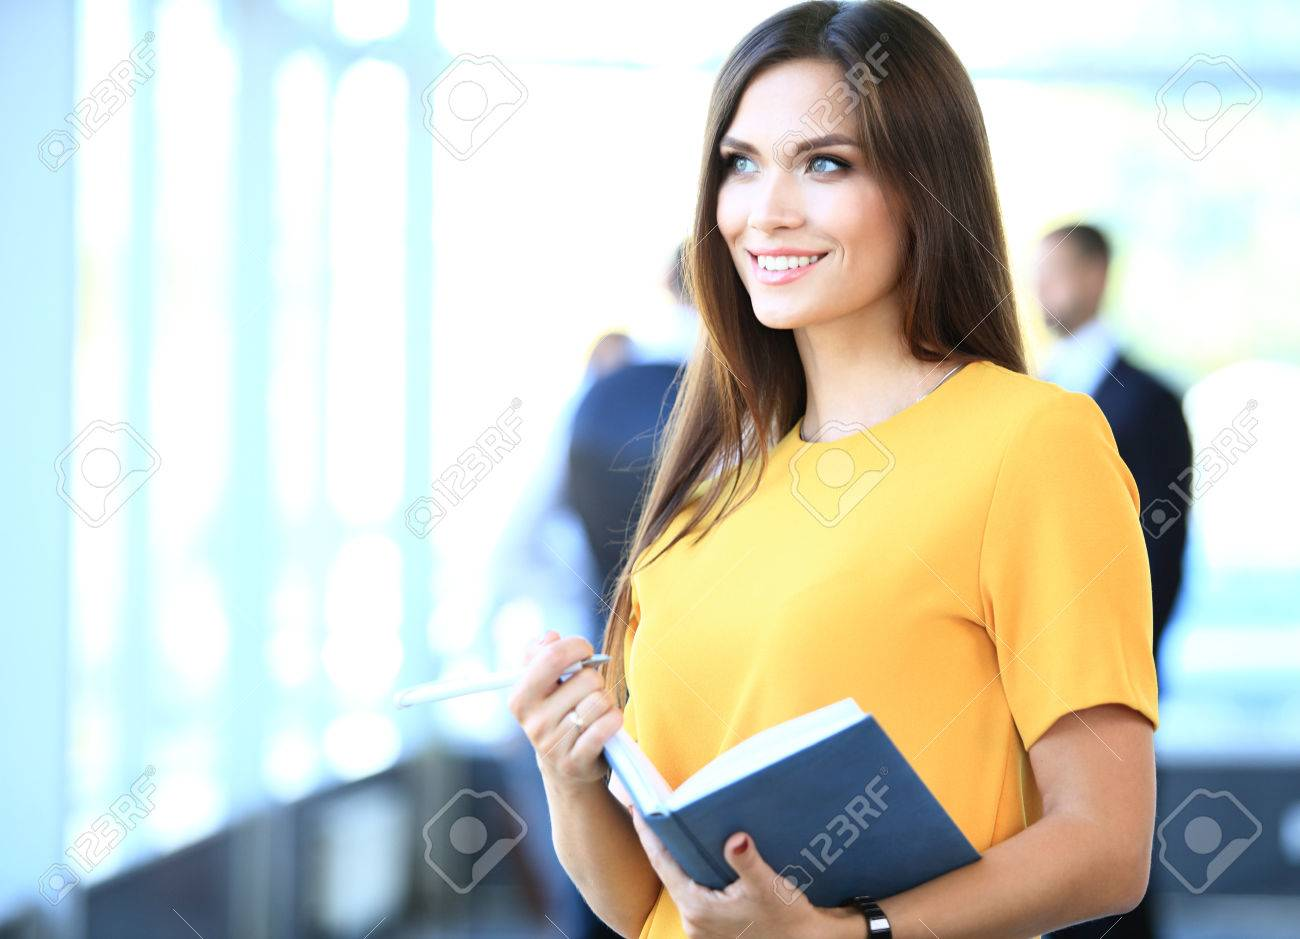 business woman with her staff, people group in background at modern bright office indoors - 48284607